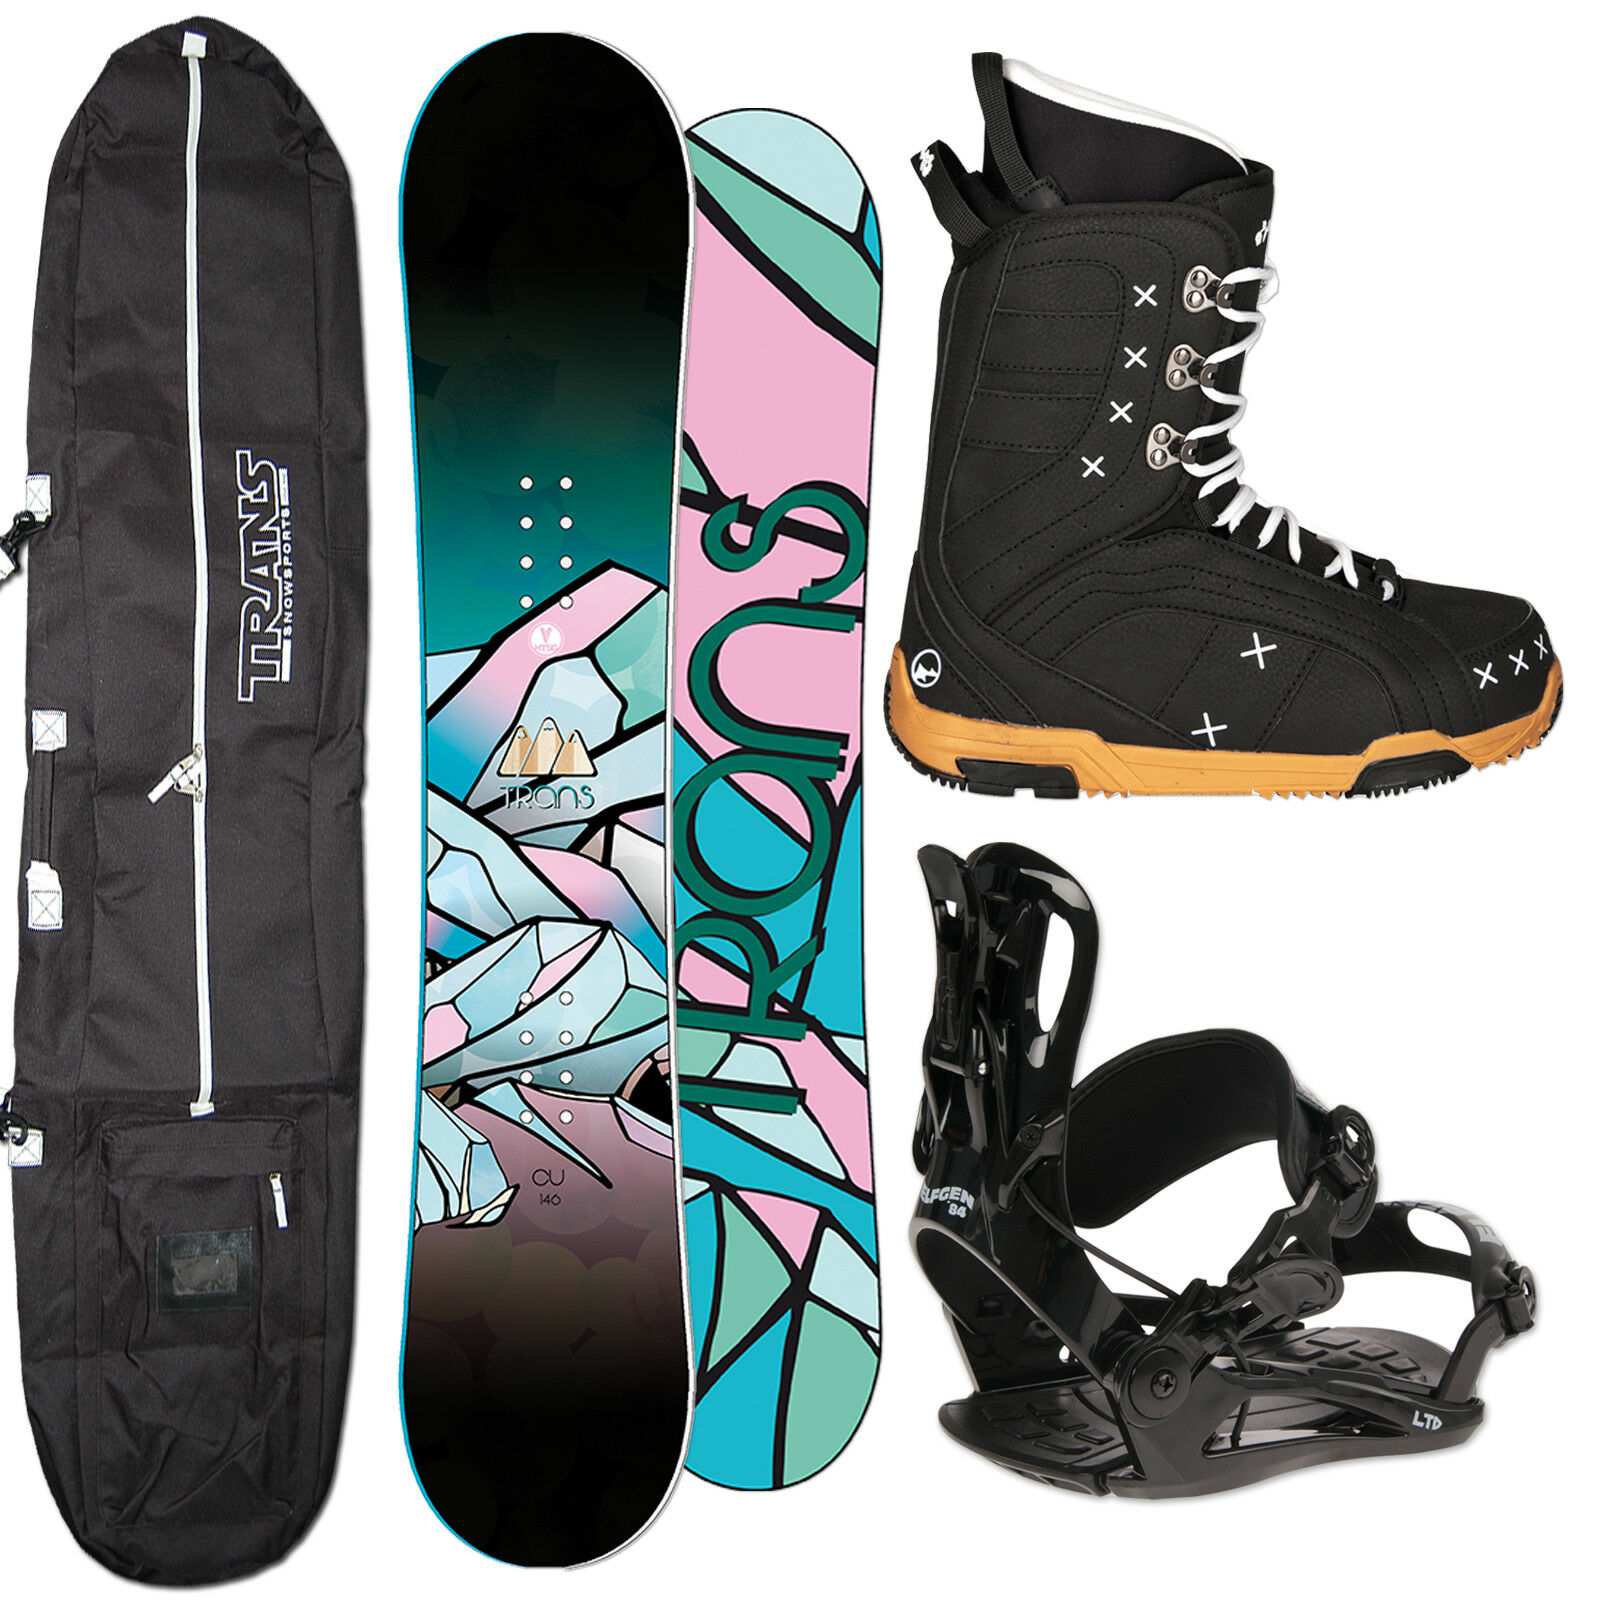 Ladies Camber Snowboard Trans Cu 147 cm + Fastec Binding SIZE M + Boots+ Bag